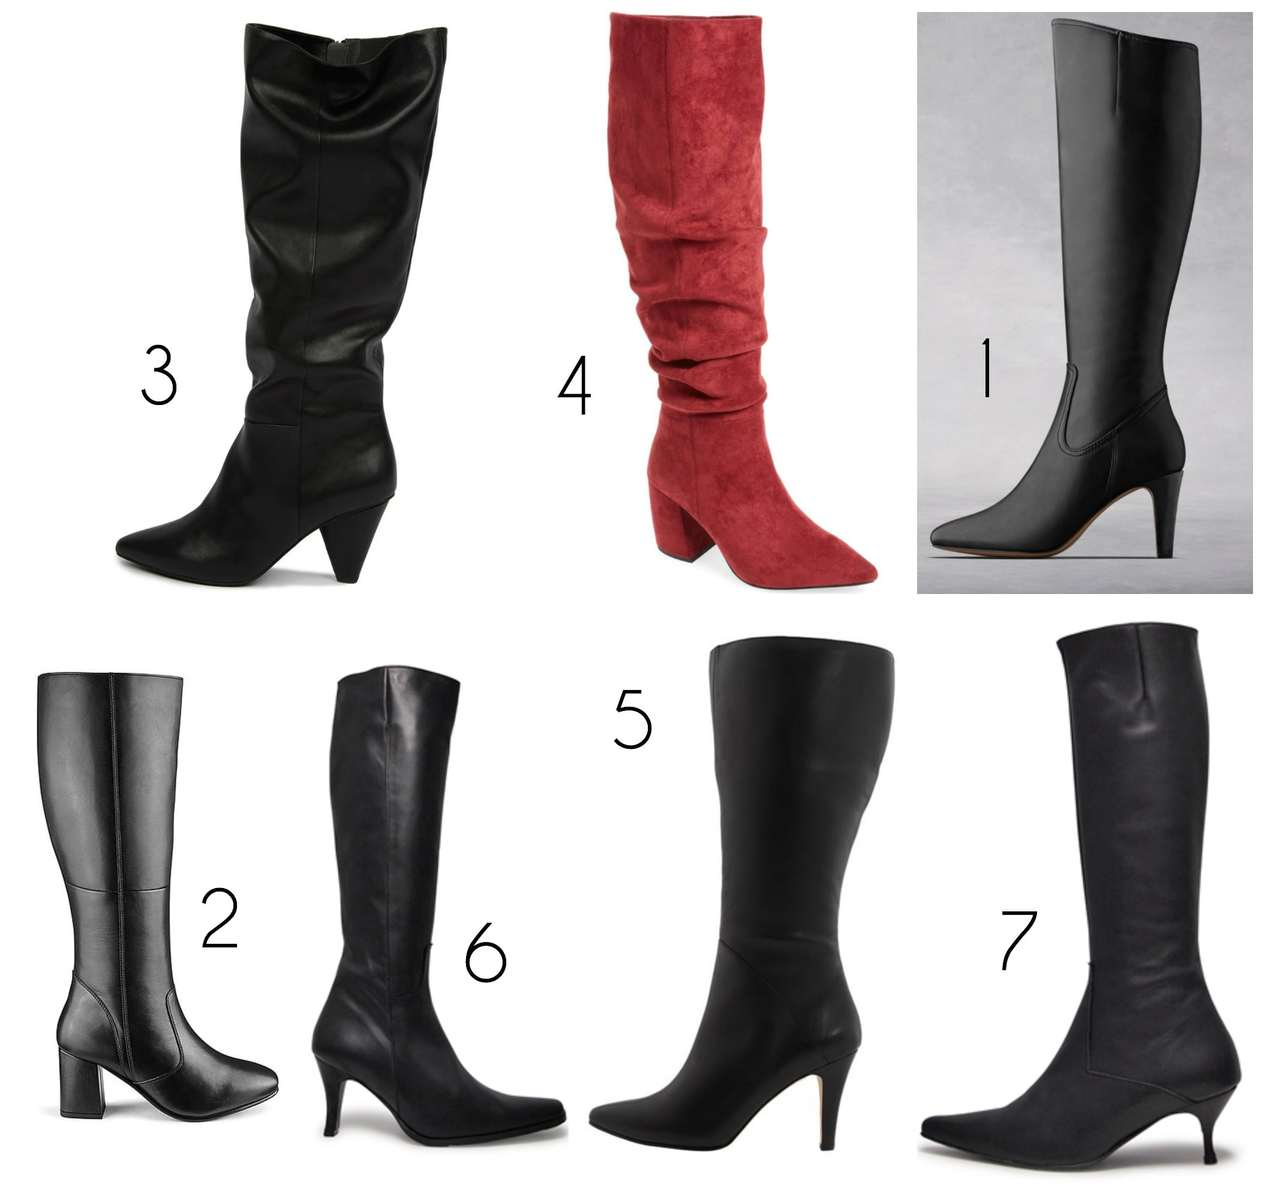 the most stylish wide calf boots with heels perfect for dressier situations or work